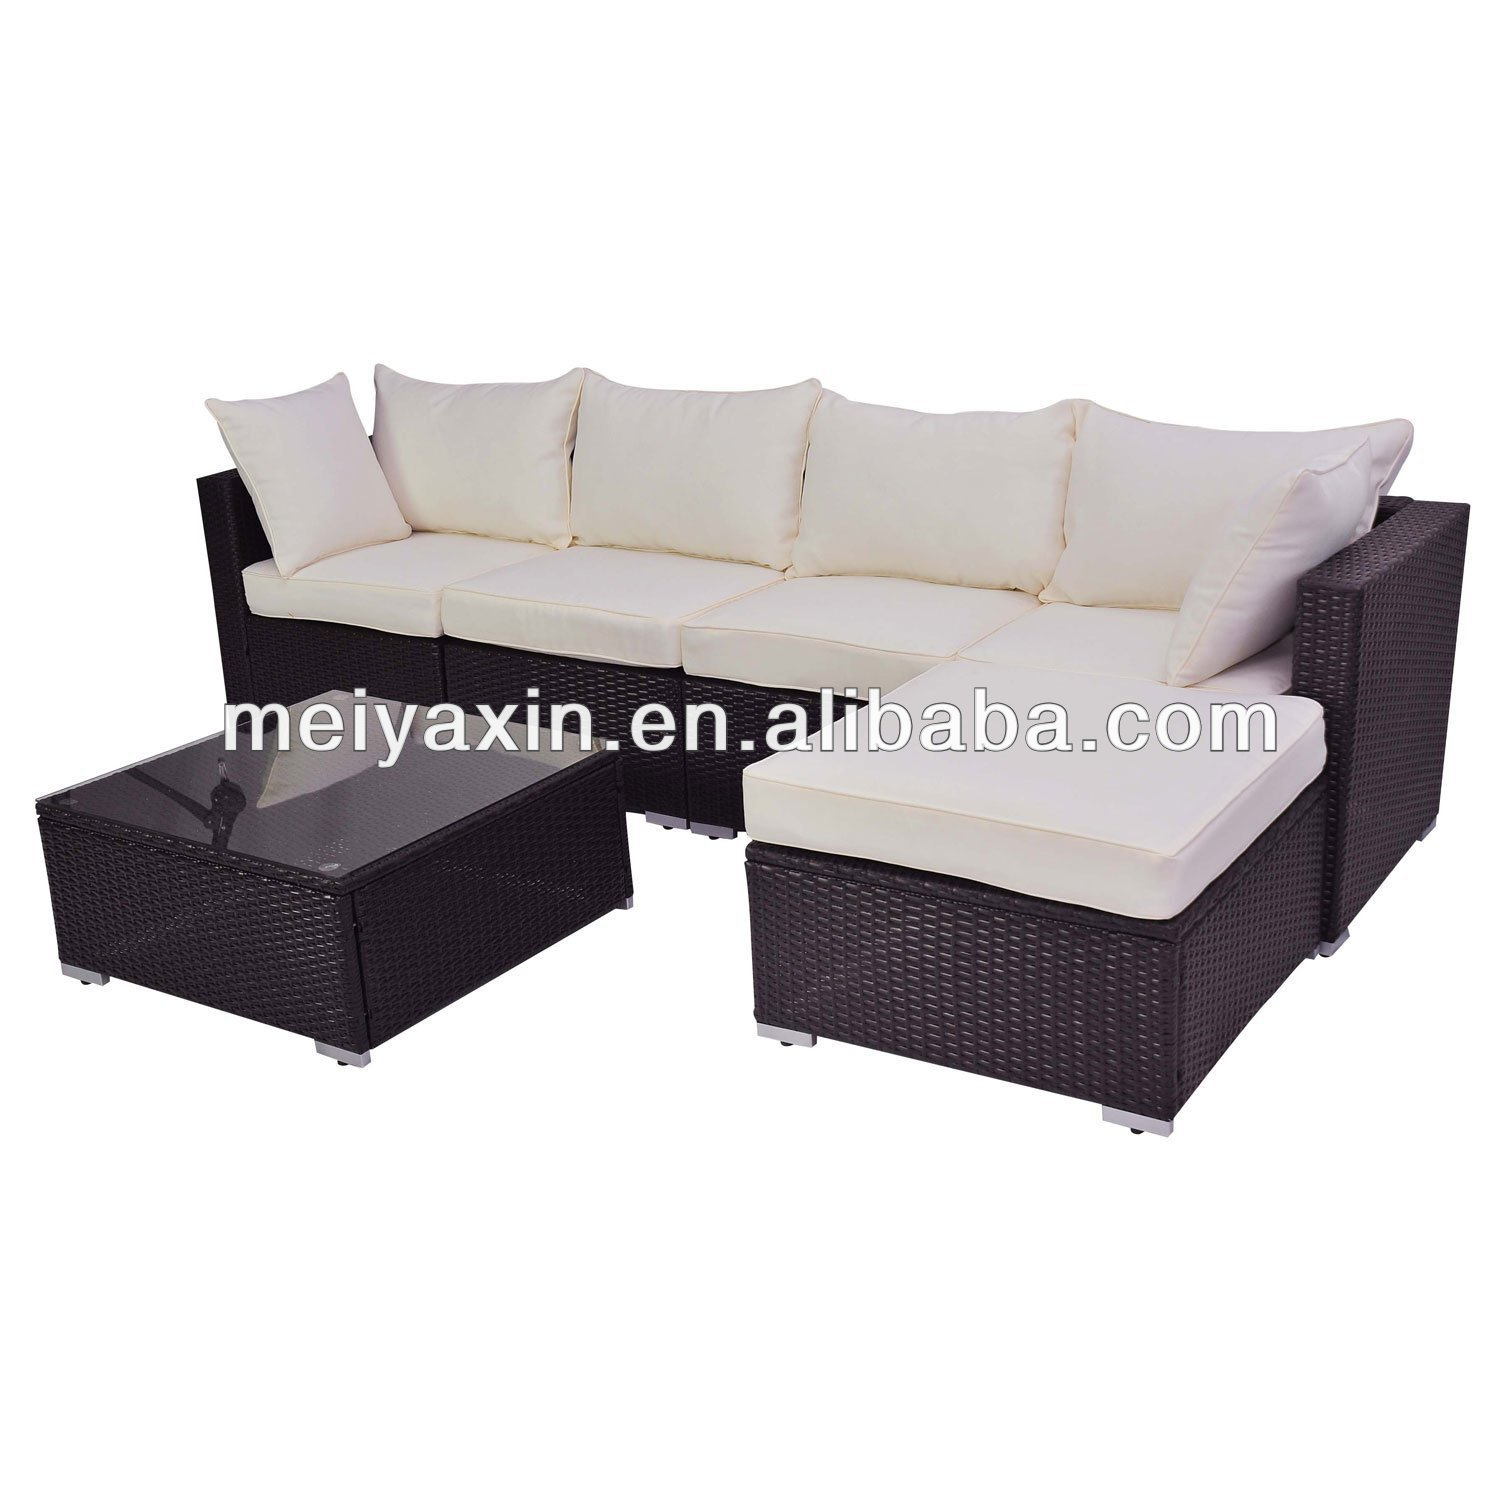 Rattan Outdoor Furniture Rattan Outdoor Furniture Suppliers and